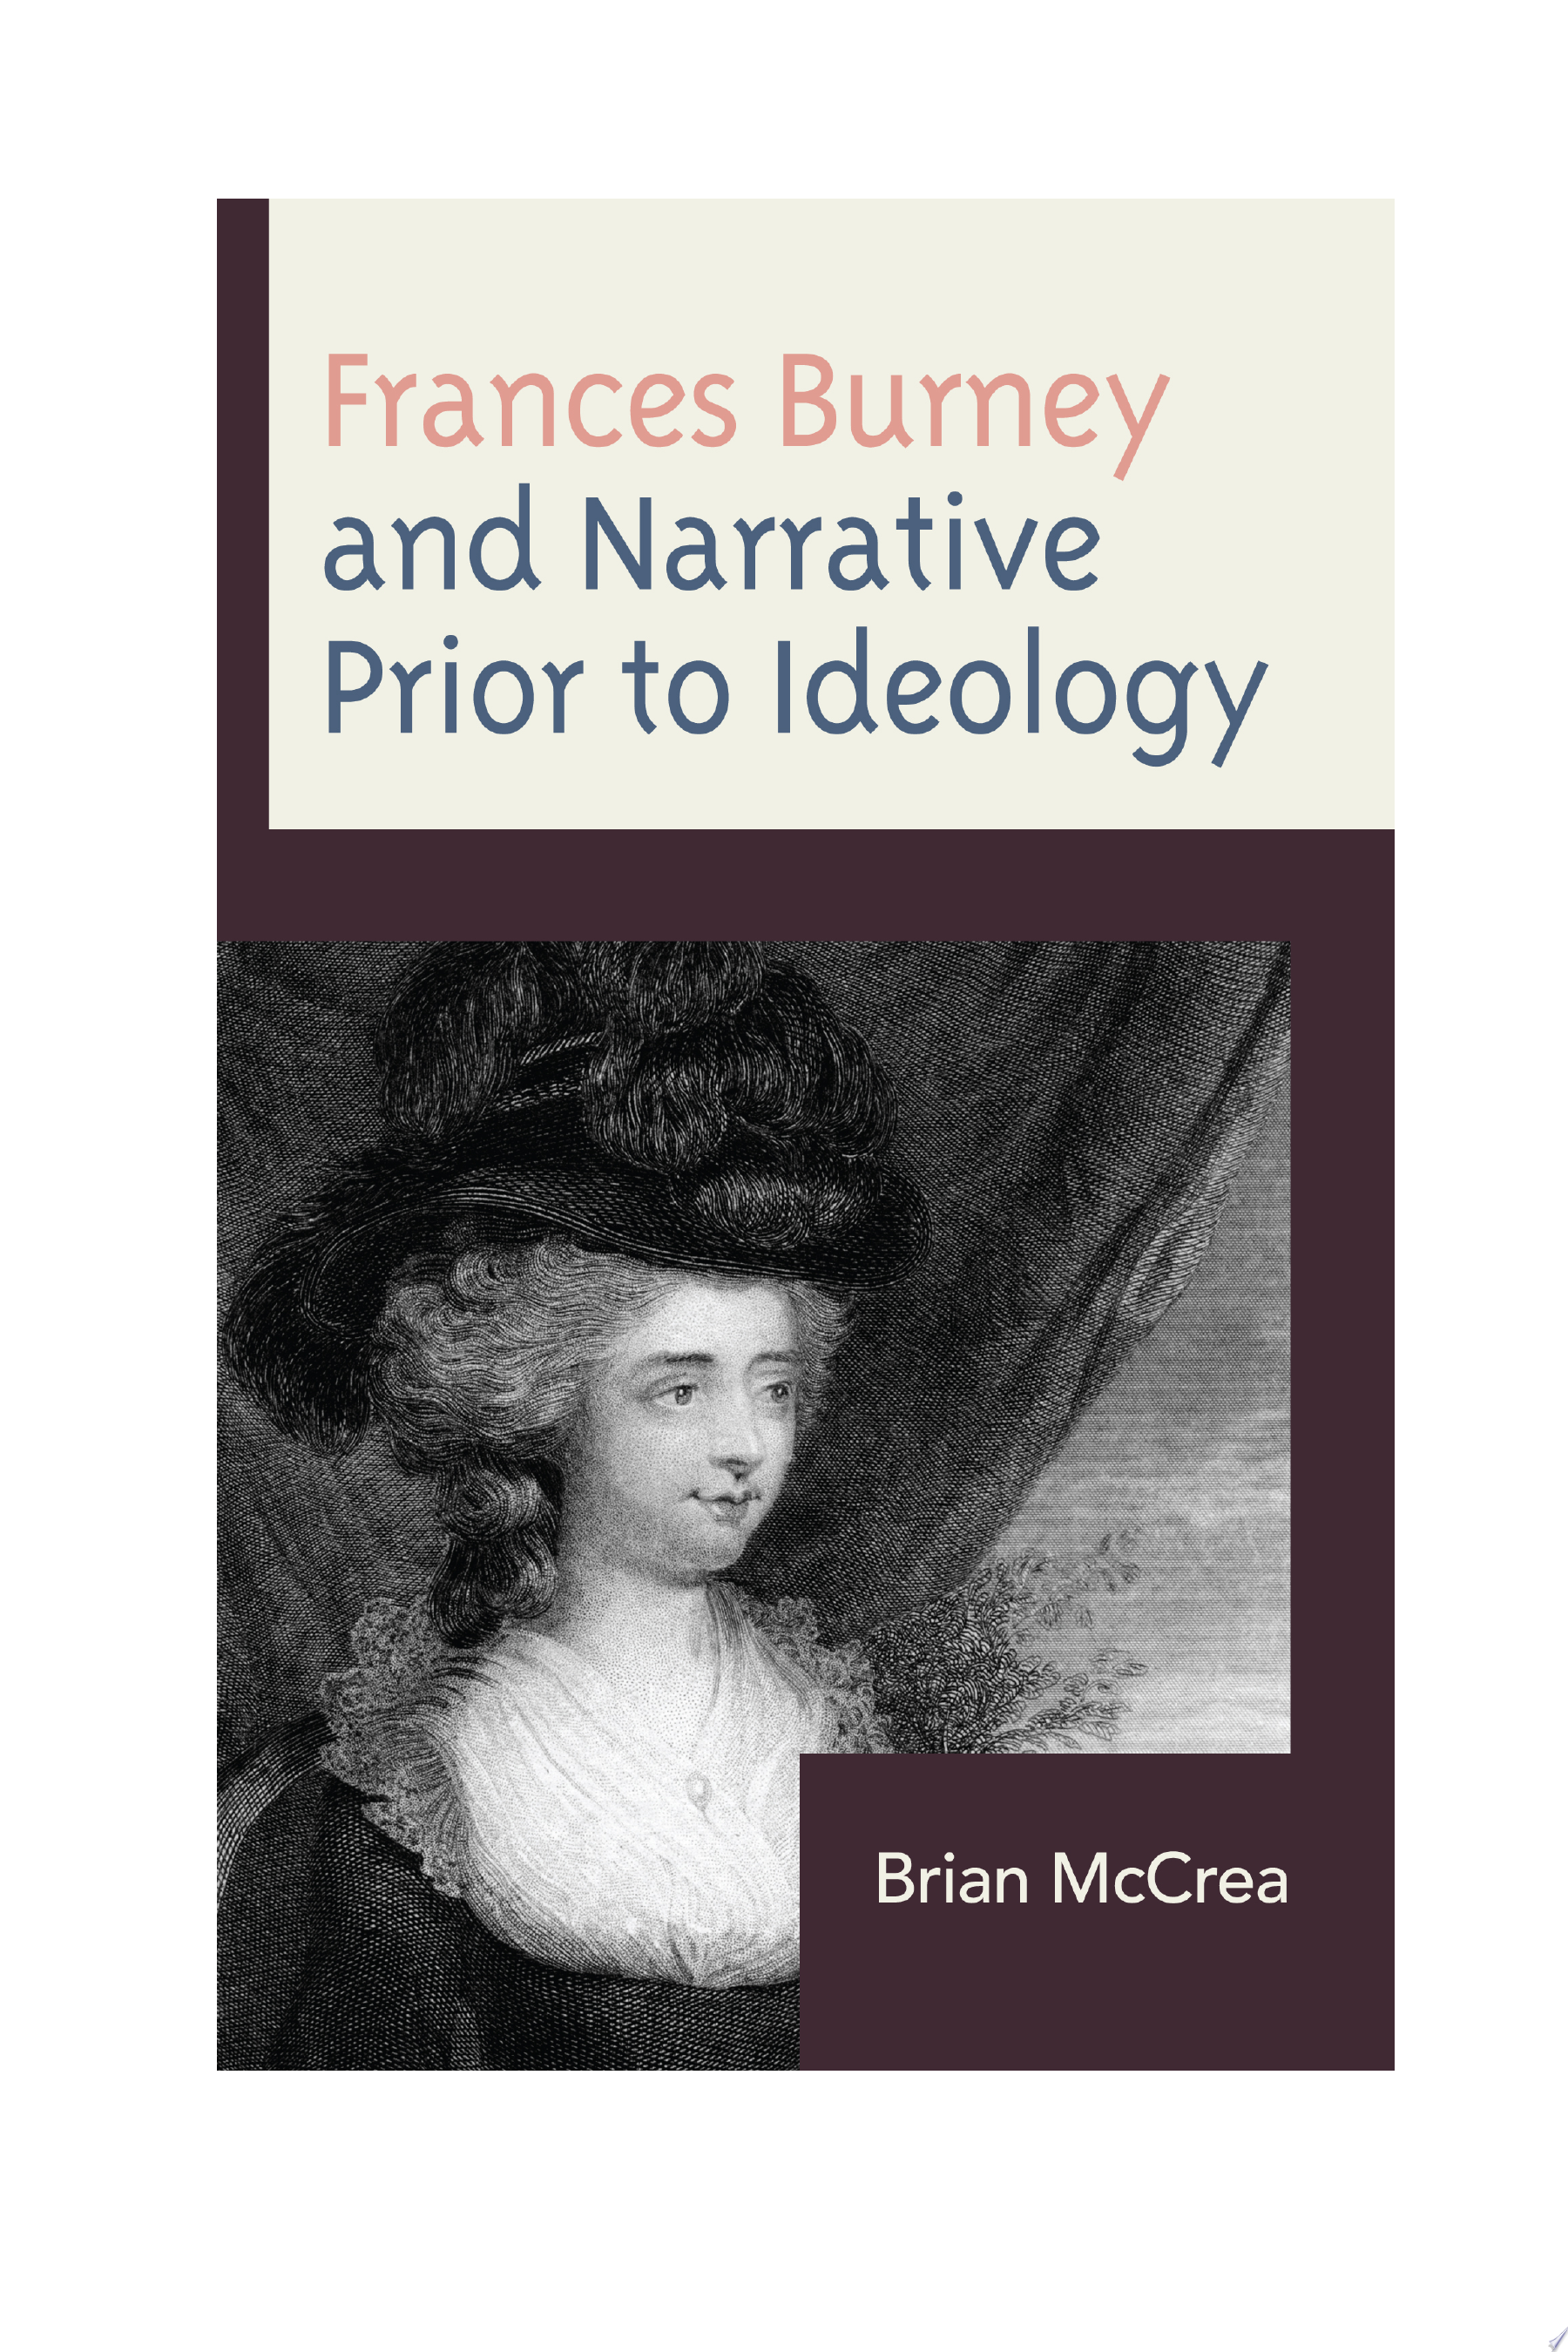 Frances Burney and Narrative Prior to Ideology